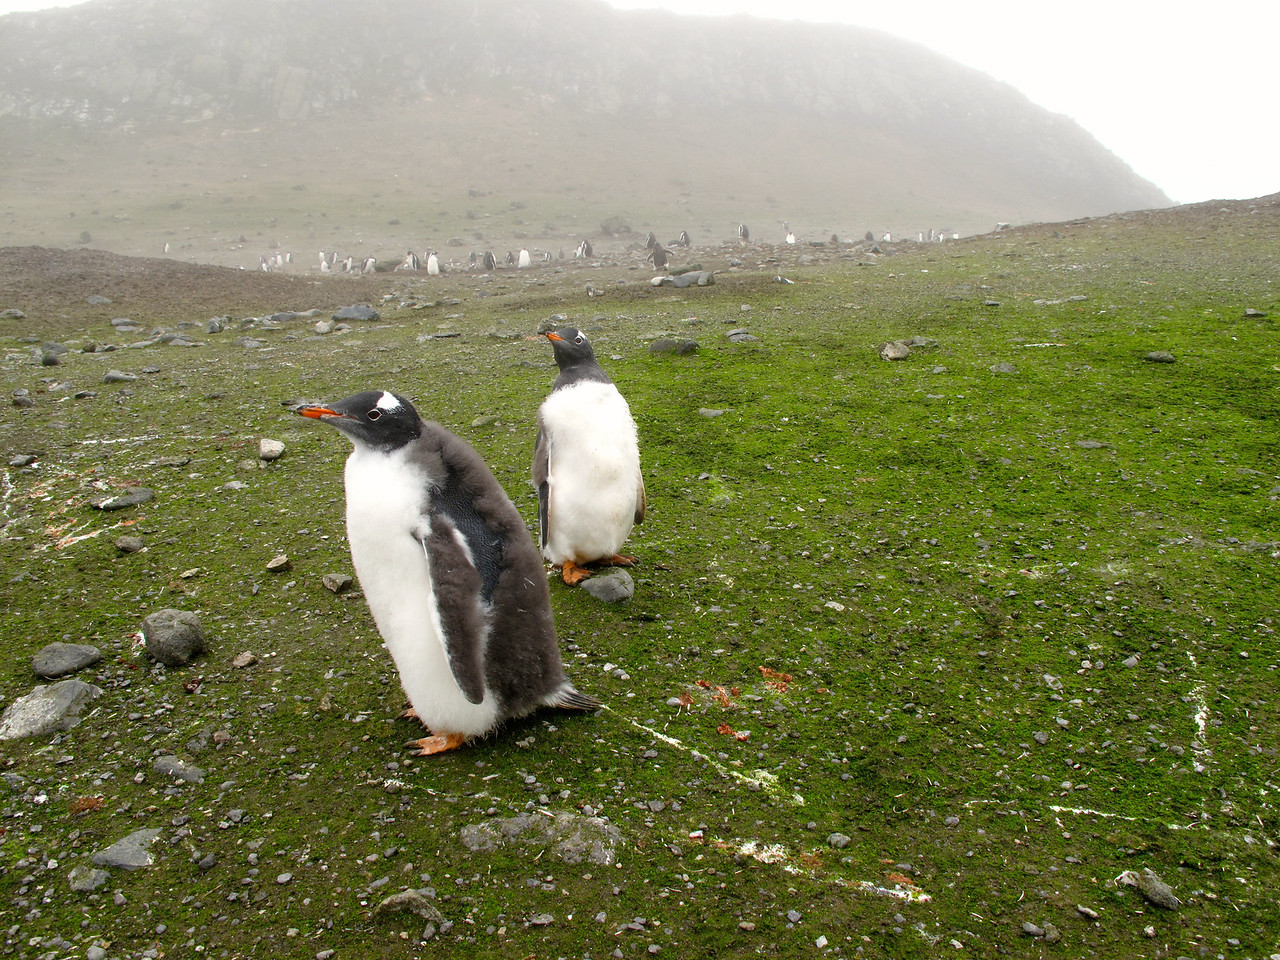 Gentoo's have a maximum weight of about 18 lbs just before moulting and drop to around 10 lbs just before mating.